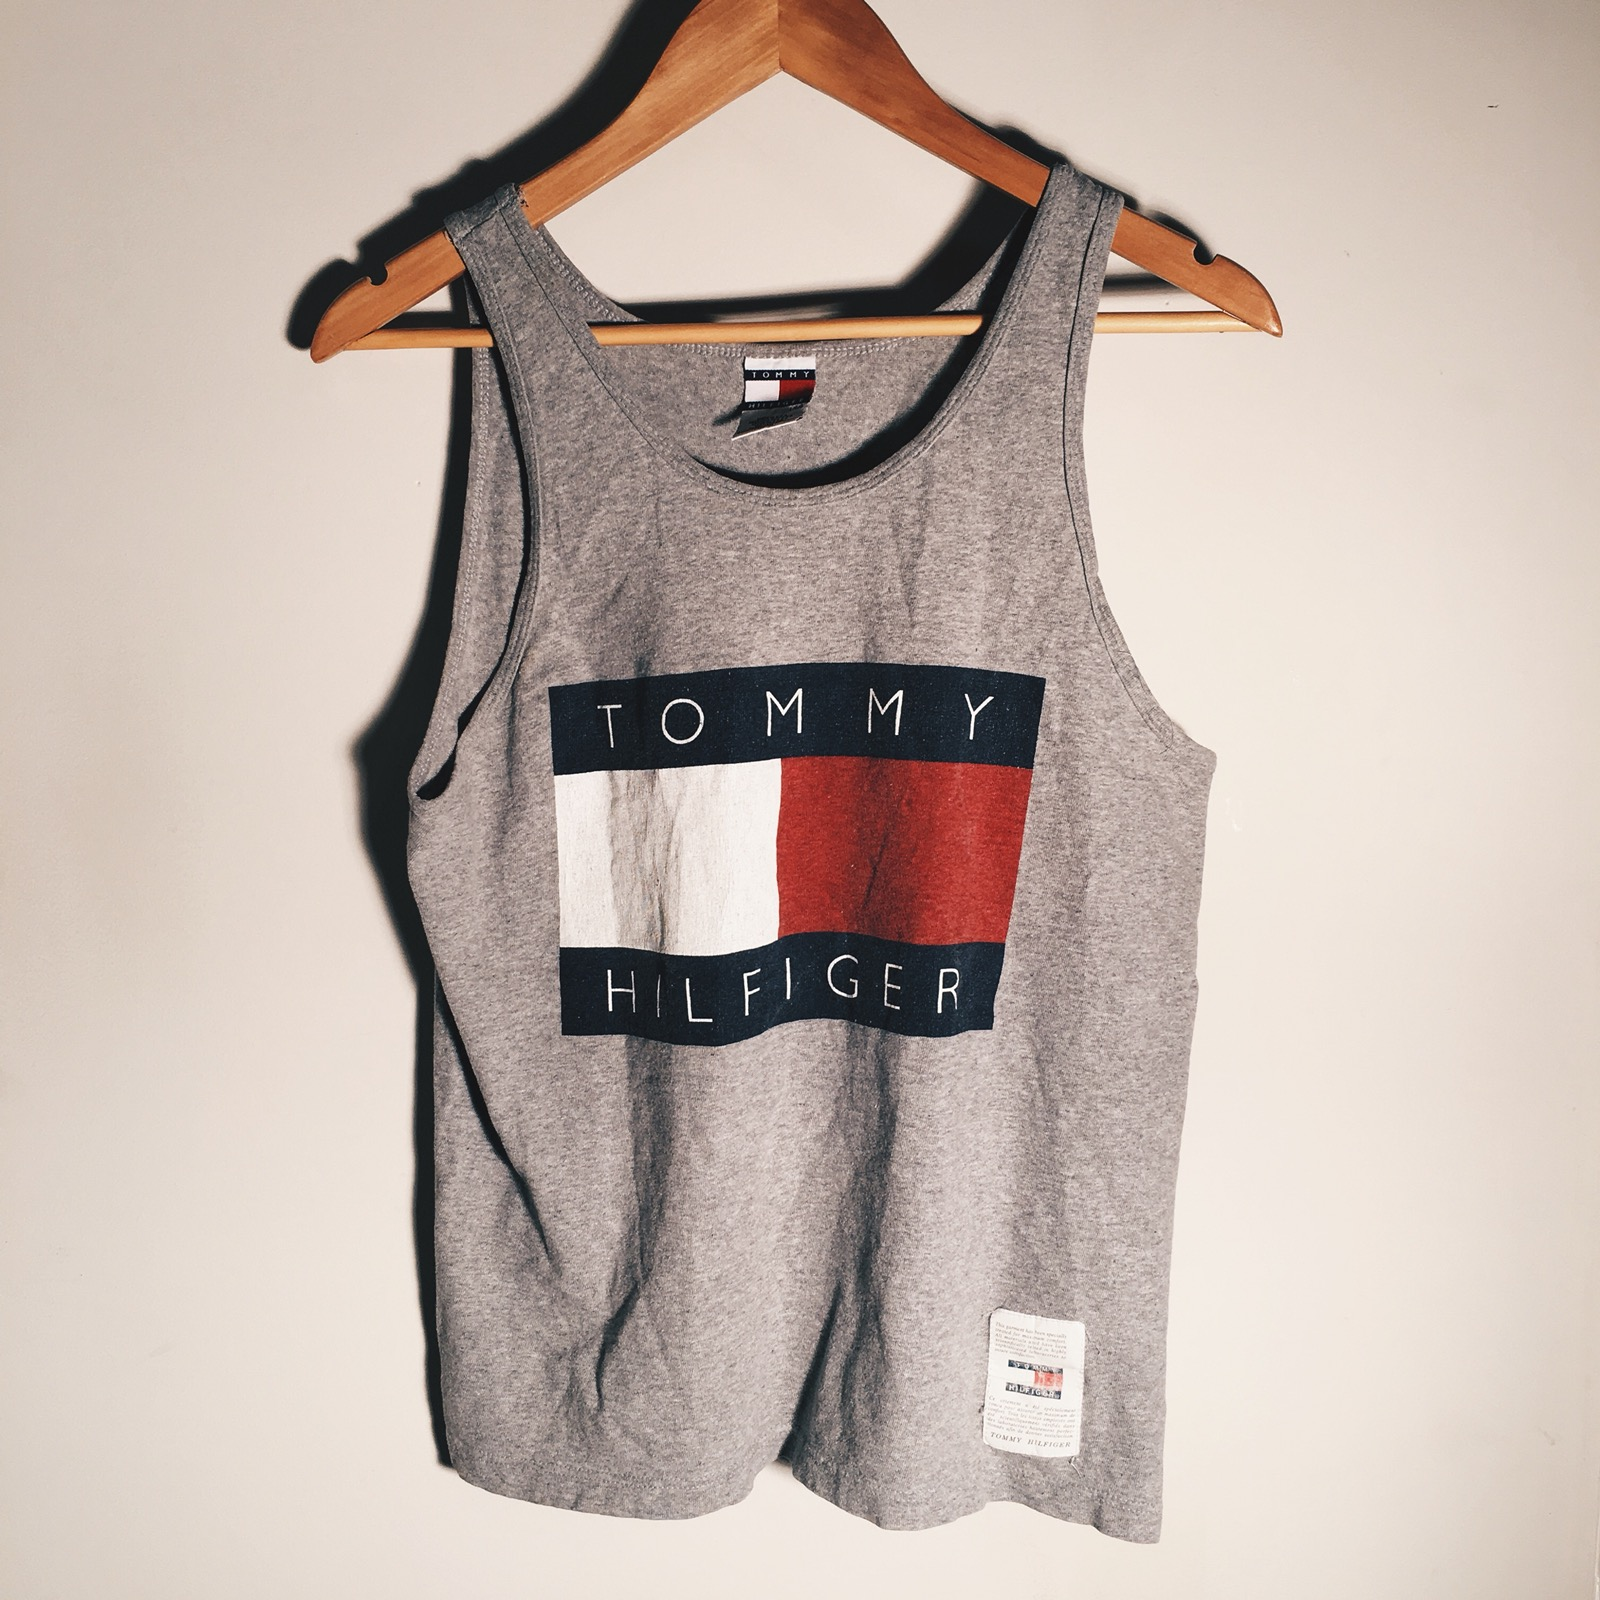 242fbdbd3df90 Tommy Hilfiger Vintage Tommy Hilfiger Big Flag Tank Top Size s - Tank Tops    Sleeveless for Sale - Grailed